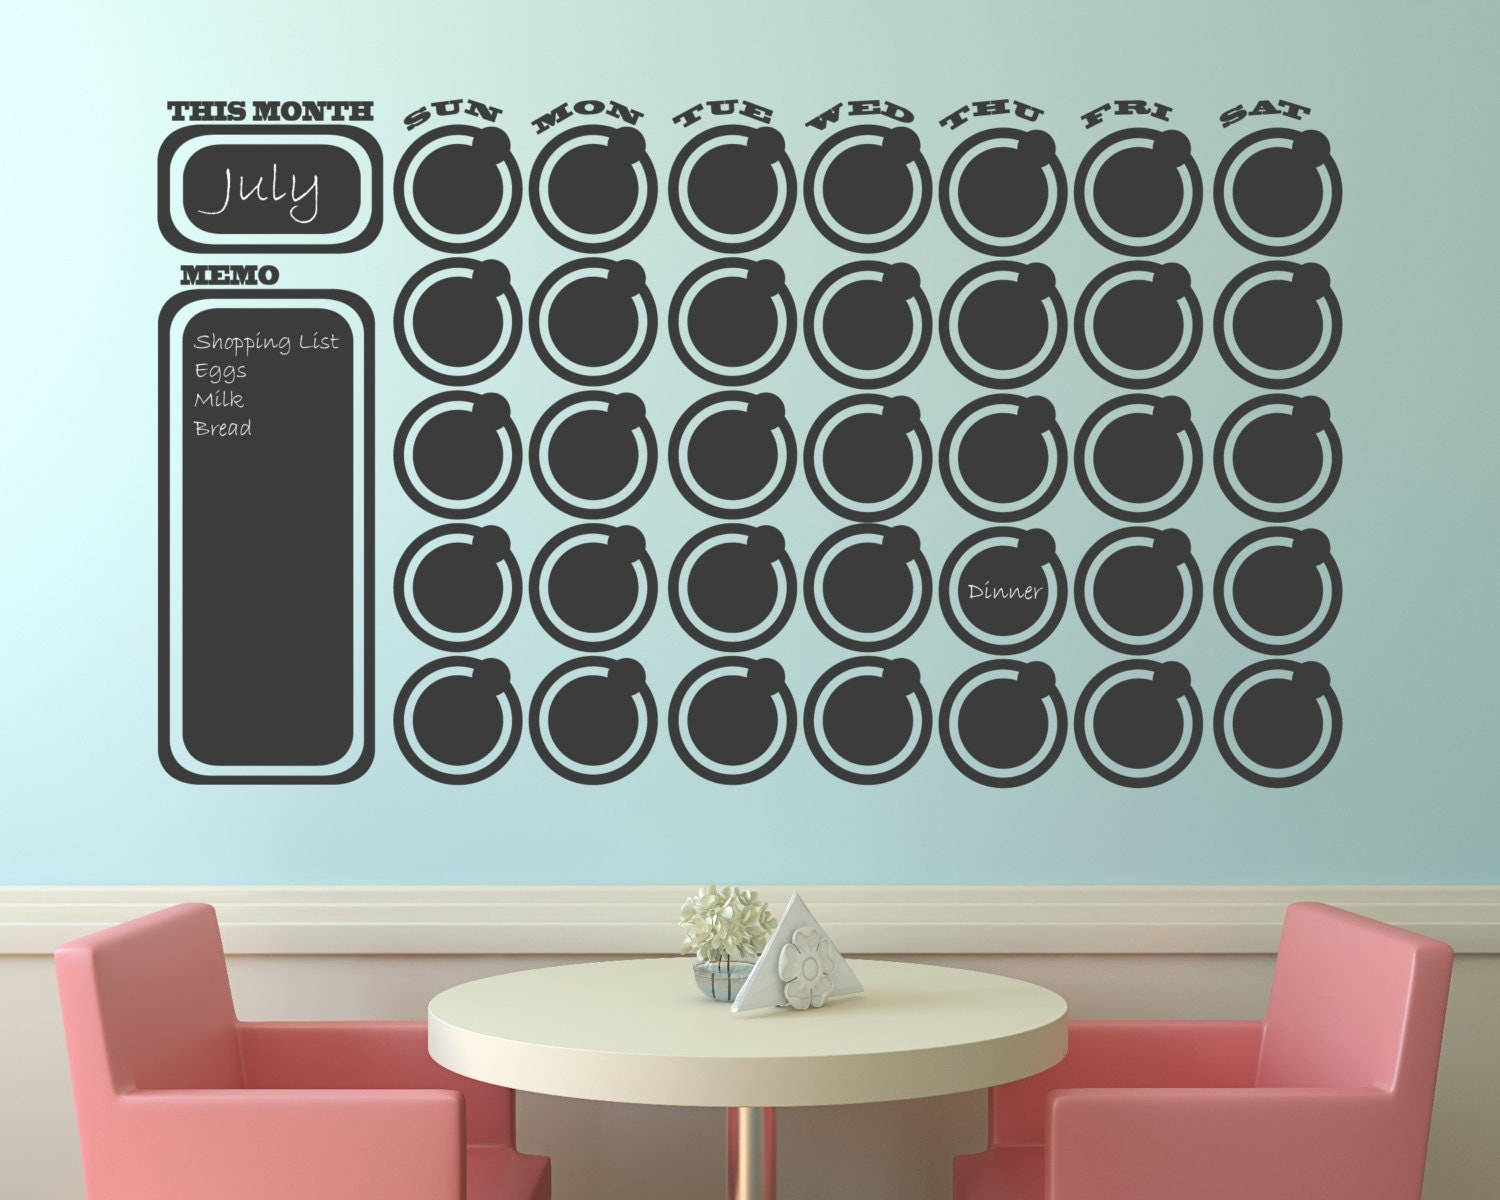 chalkboard wall decal calendar wall decal memo with free chalk - 🔎zoom